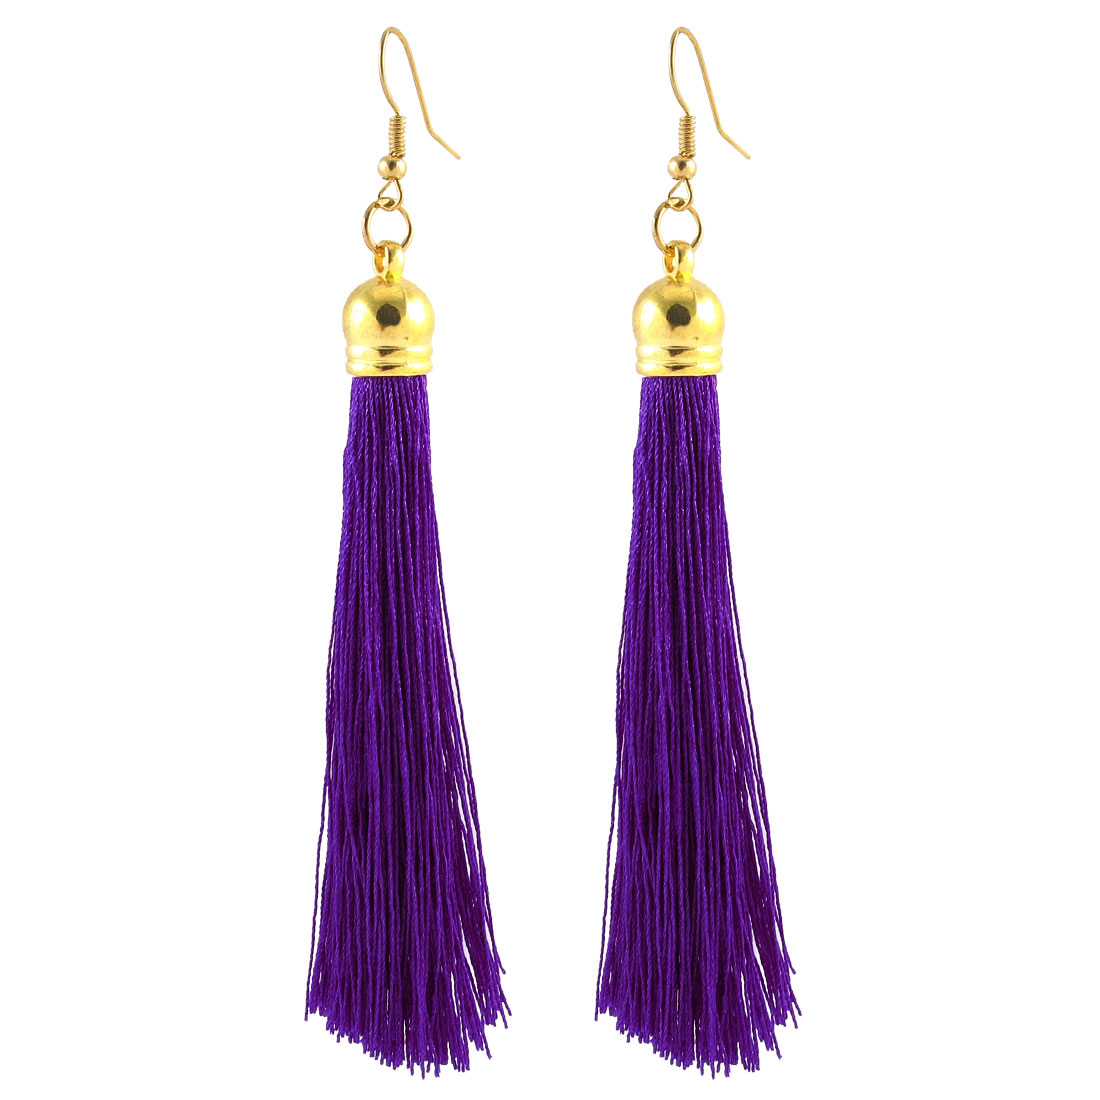 Long Tassel Fringe Boho Style Fish Hook Earrings Eardrop Ear Decor Pair Puple